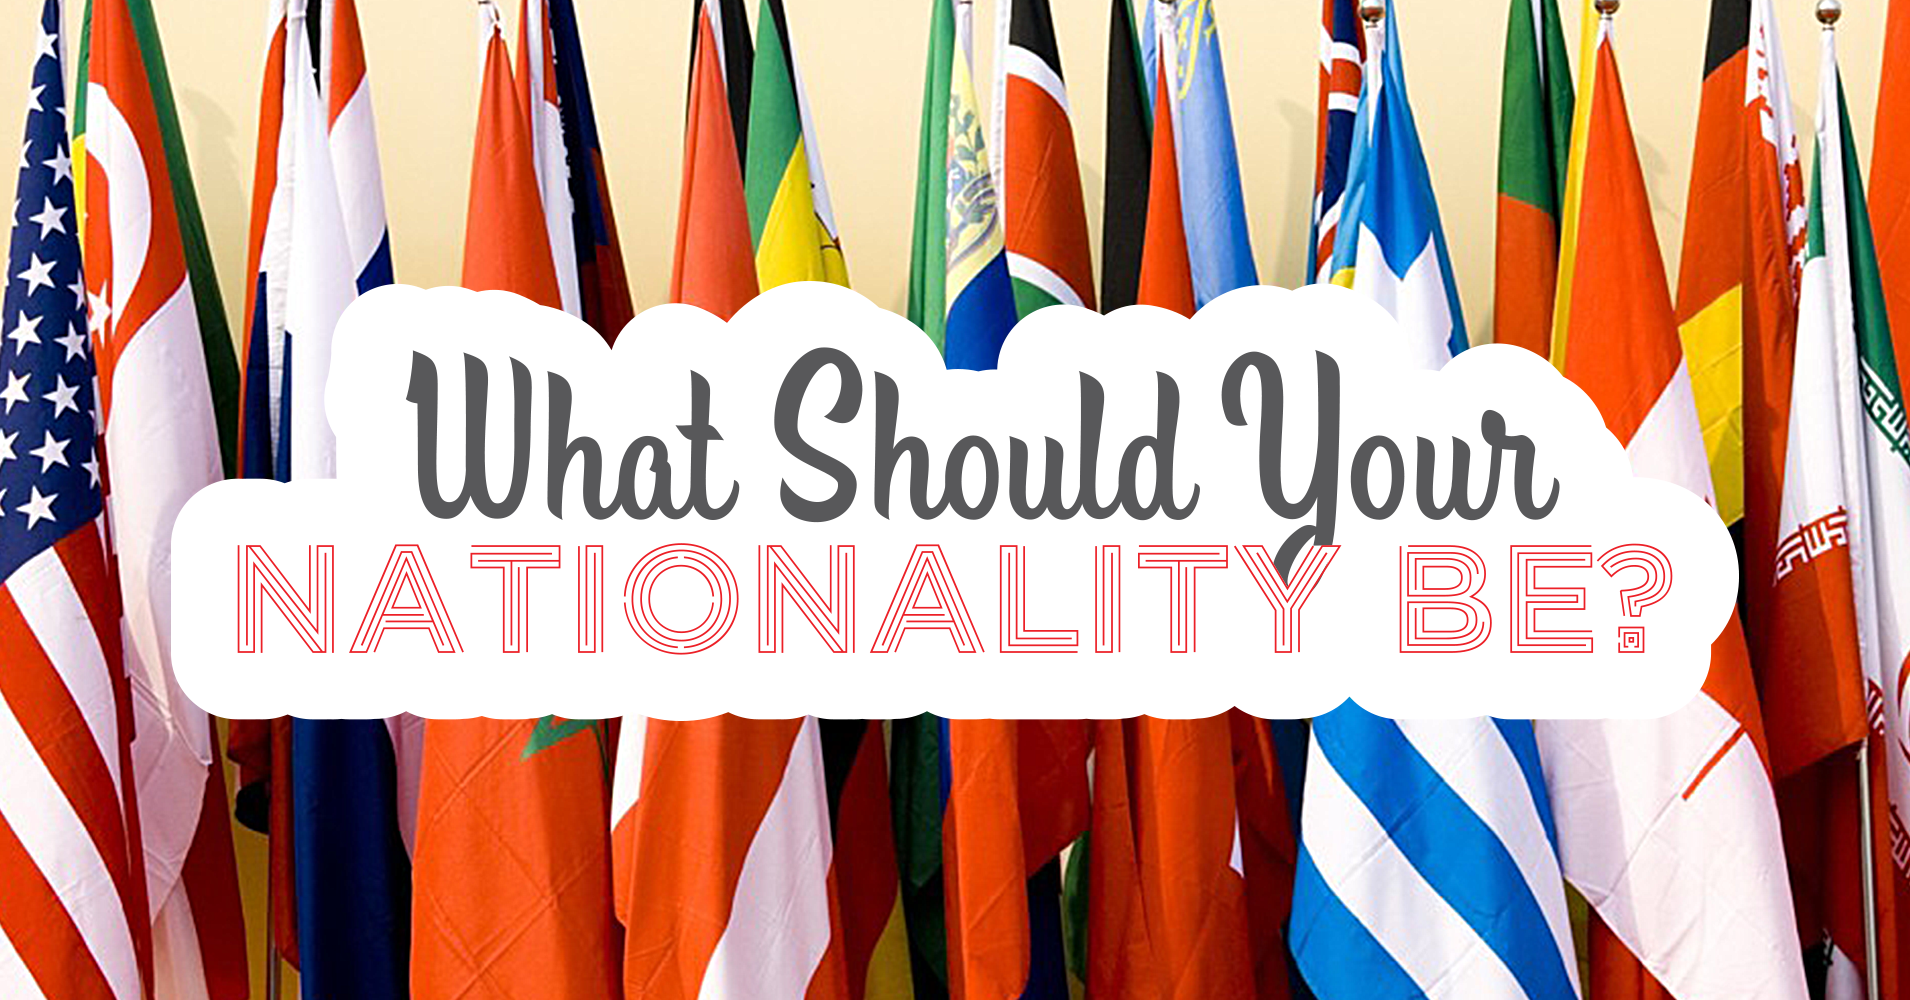 What Should Your Nationality Be?  Quiz  Quizonym. What Do Cover Letter Look Like Template. Wheel Of Fortune Powerpoint Template. Sample Flowchart Template. Affidavit Of Survivorship Form. Template For Birthday Card. How To Write A Motivational Letter. Marketing Assistant Resume Samples Template. How To Use Templates In Word